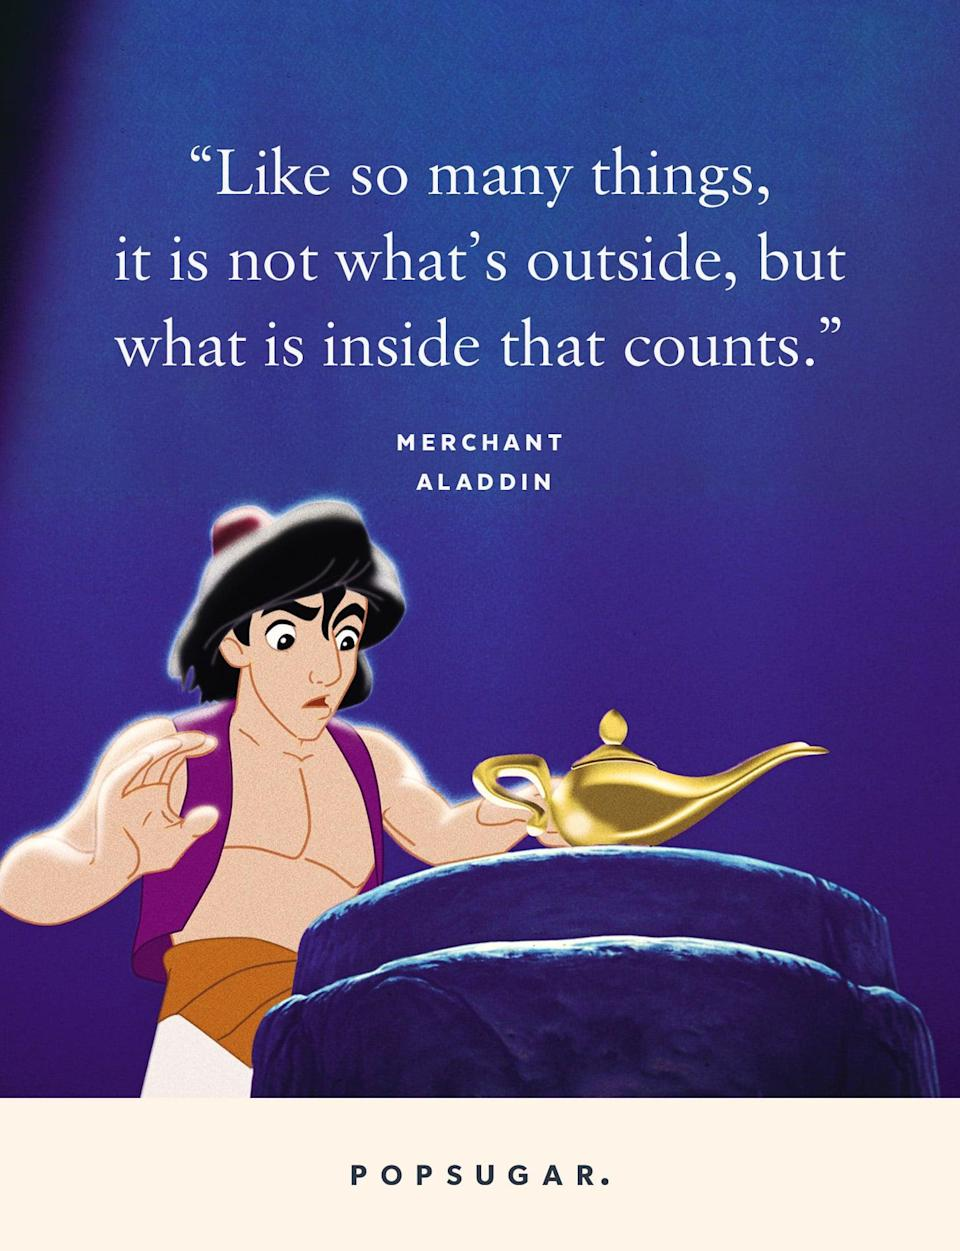 "<p>""Like so many things, it is not what's outside, but what is inside that counts."" - Merchant, <strong>Aladdin</strong> </p>"